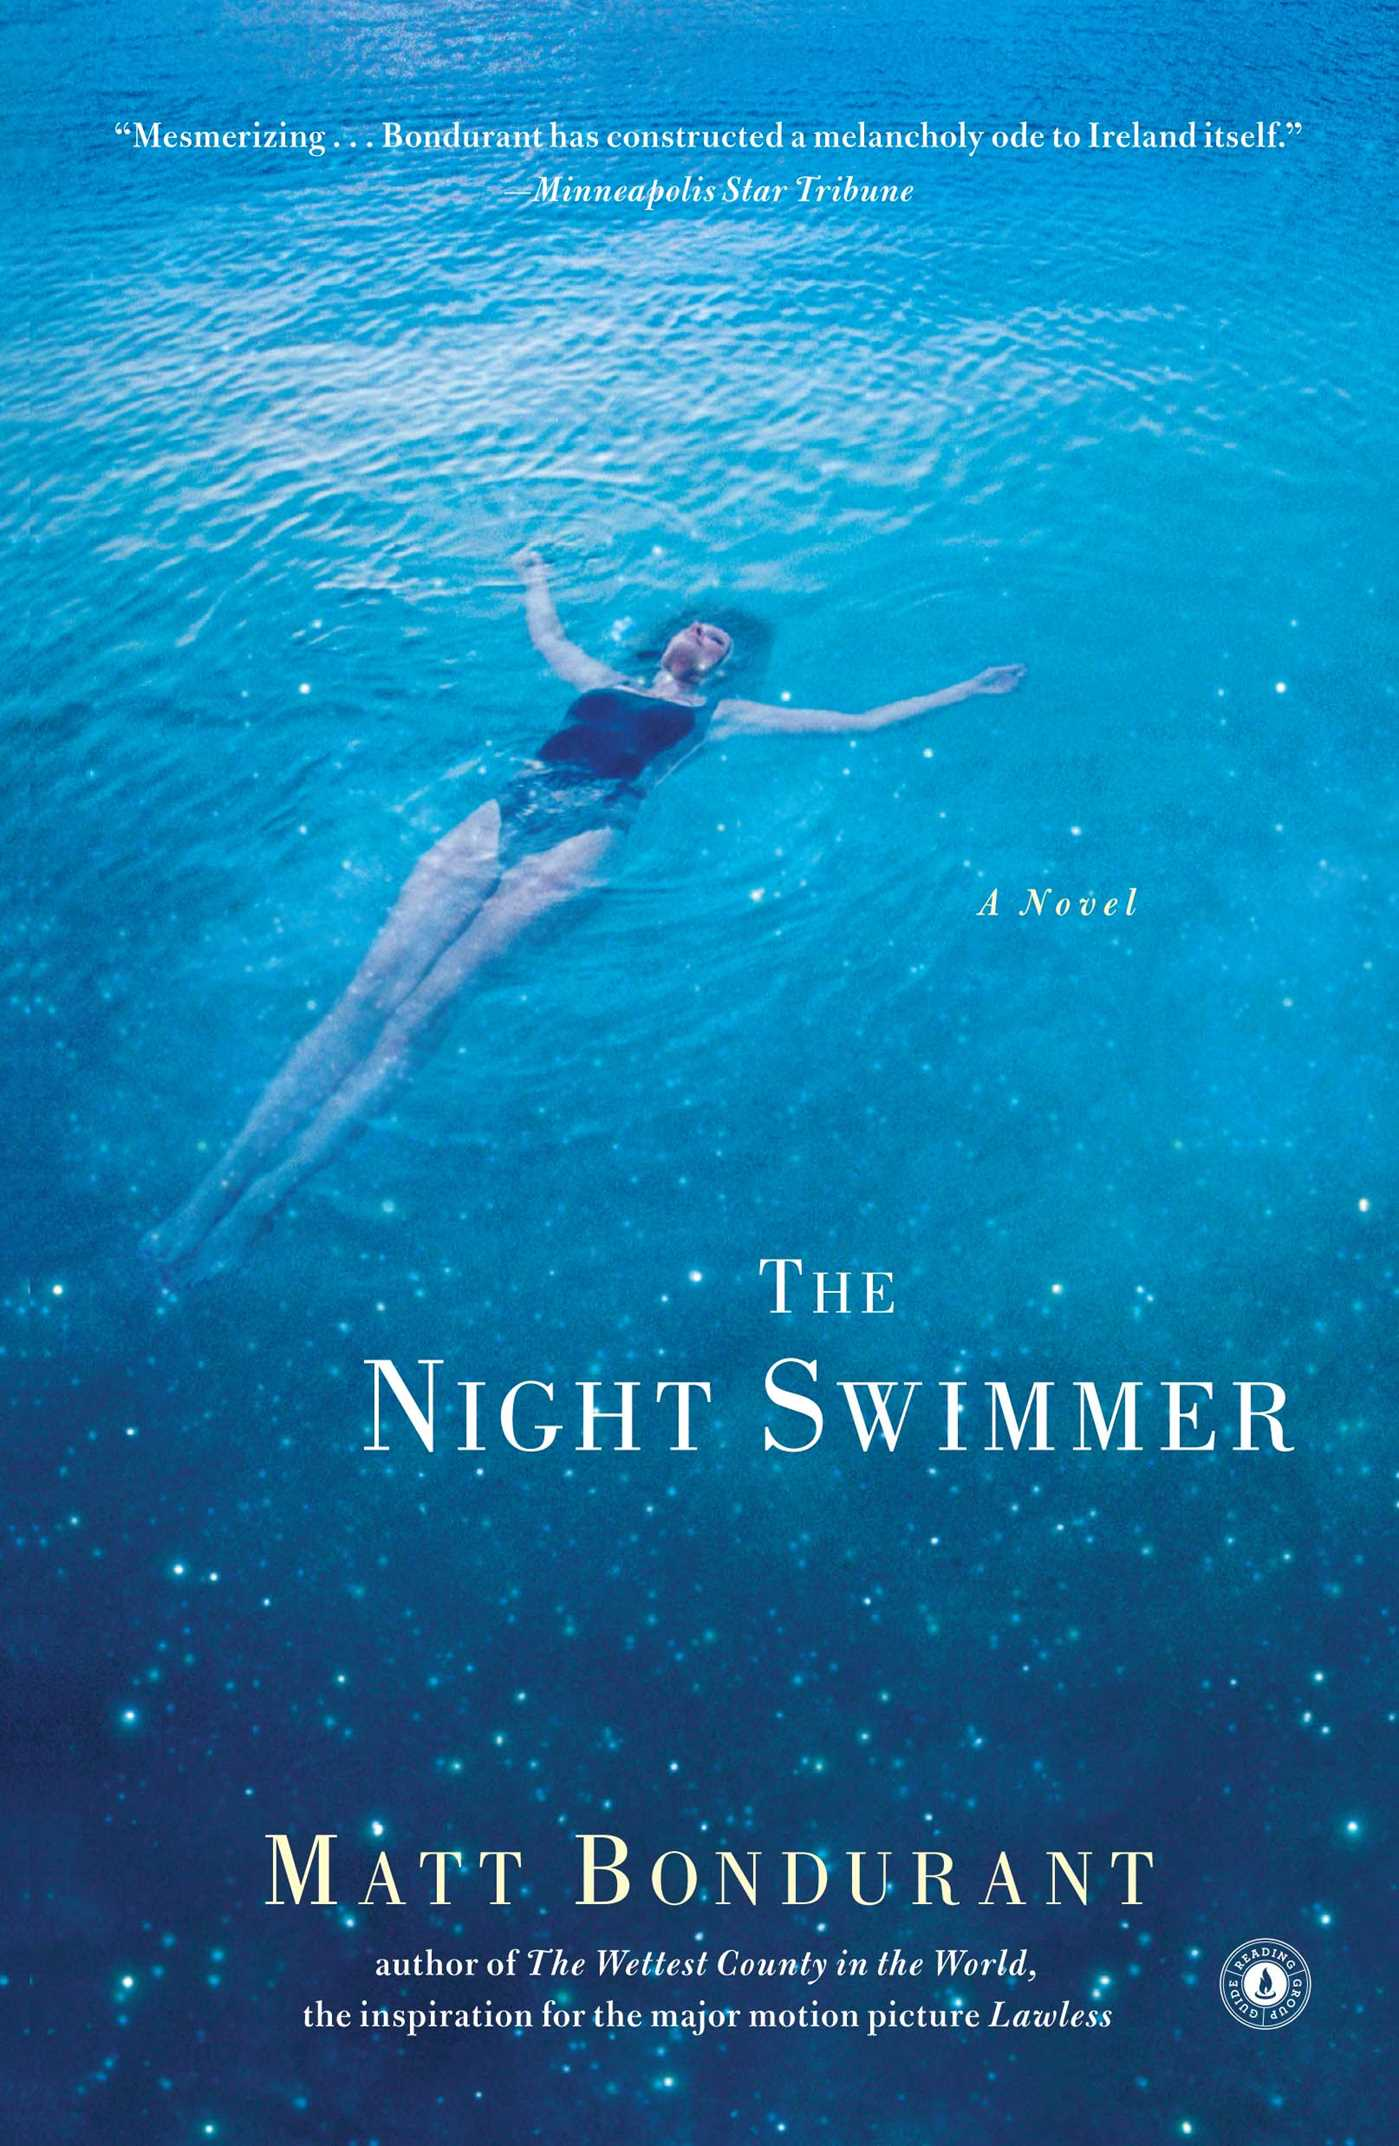 Night swimmer 9781451625301 hr